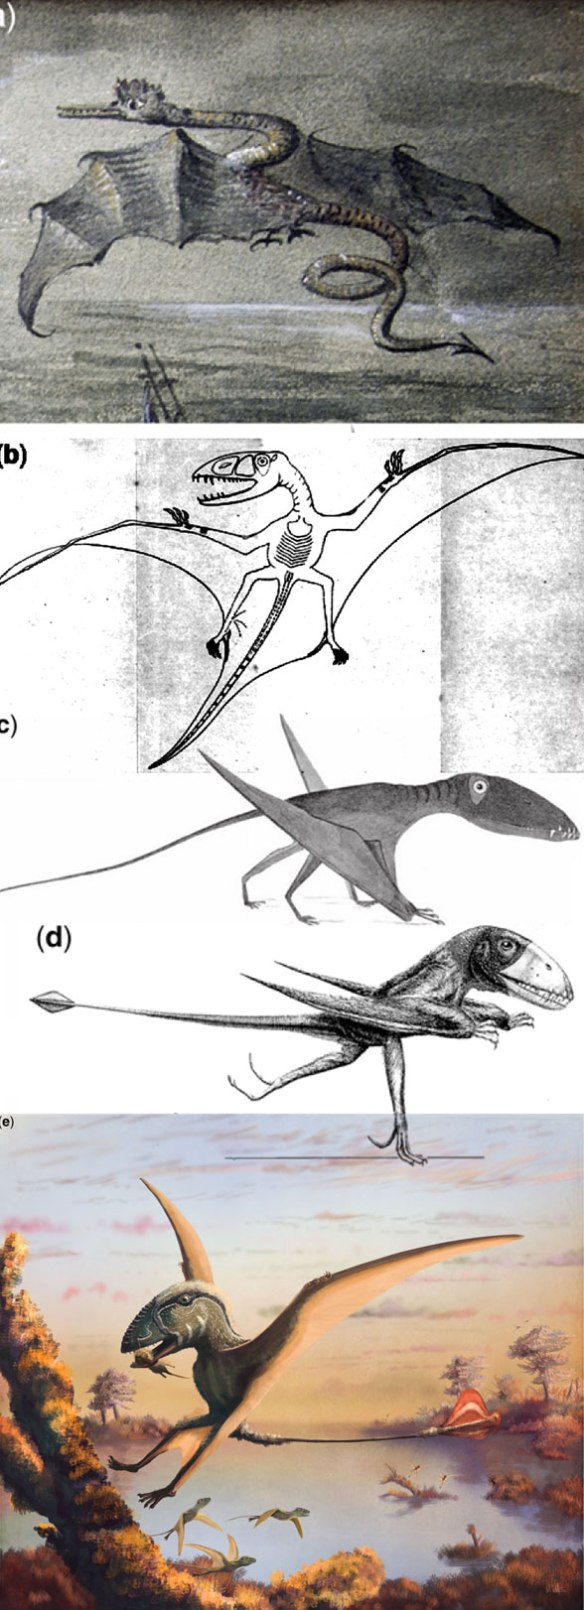 Figure 1. Images from Hone, Witton and Martill 2017 showing the 'evolution' of our concept of Dimorphodon. Compare the latest color version to tracings of the several skeletons in figure 2.